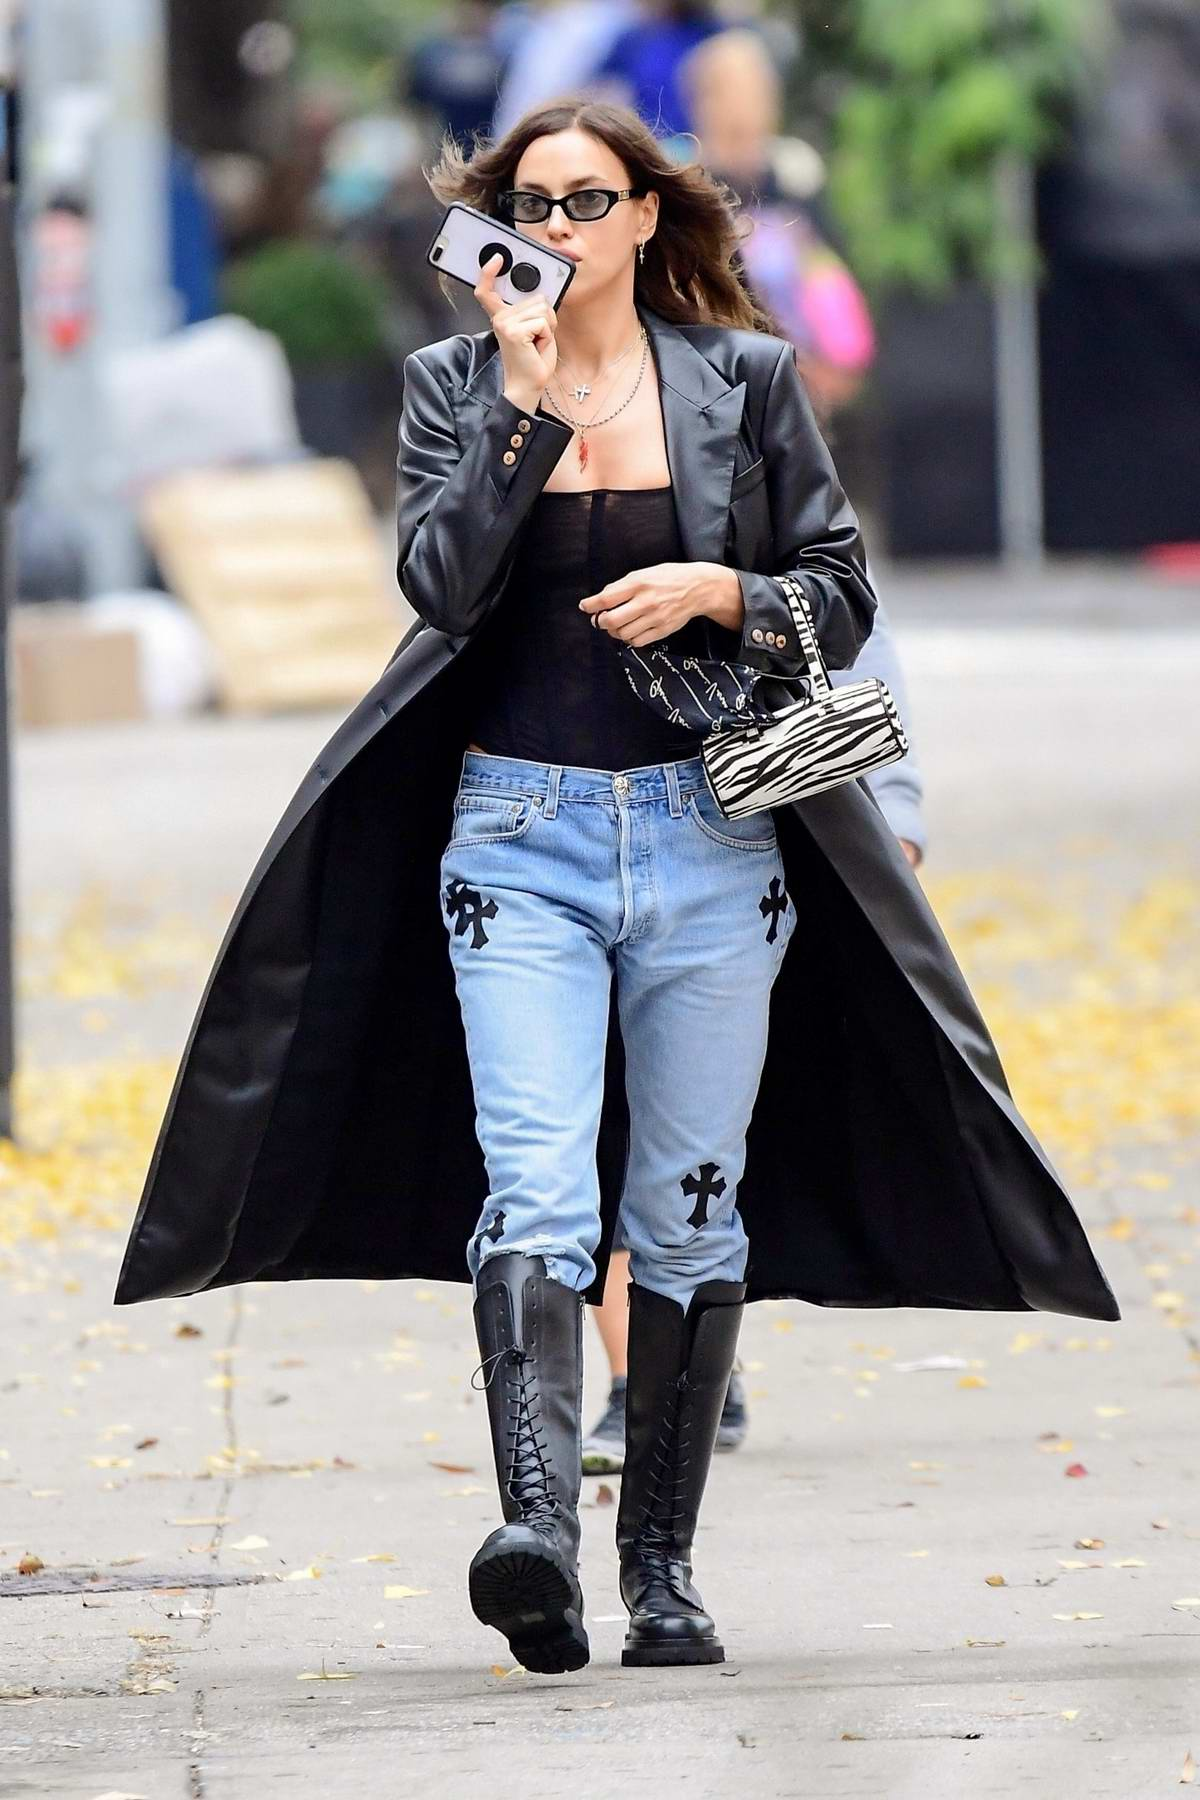 Irina Shayk looks stylish in a black overcoat and denim while out in New York City